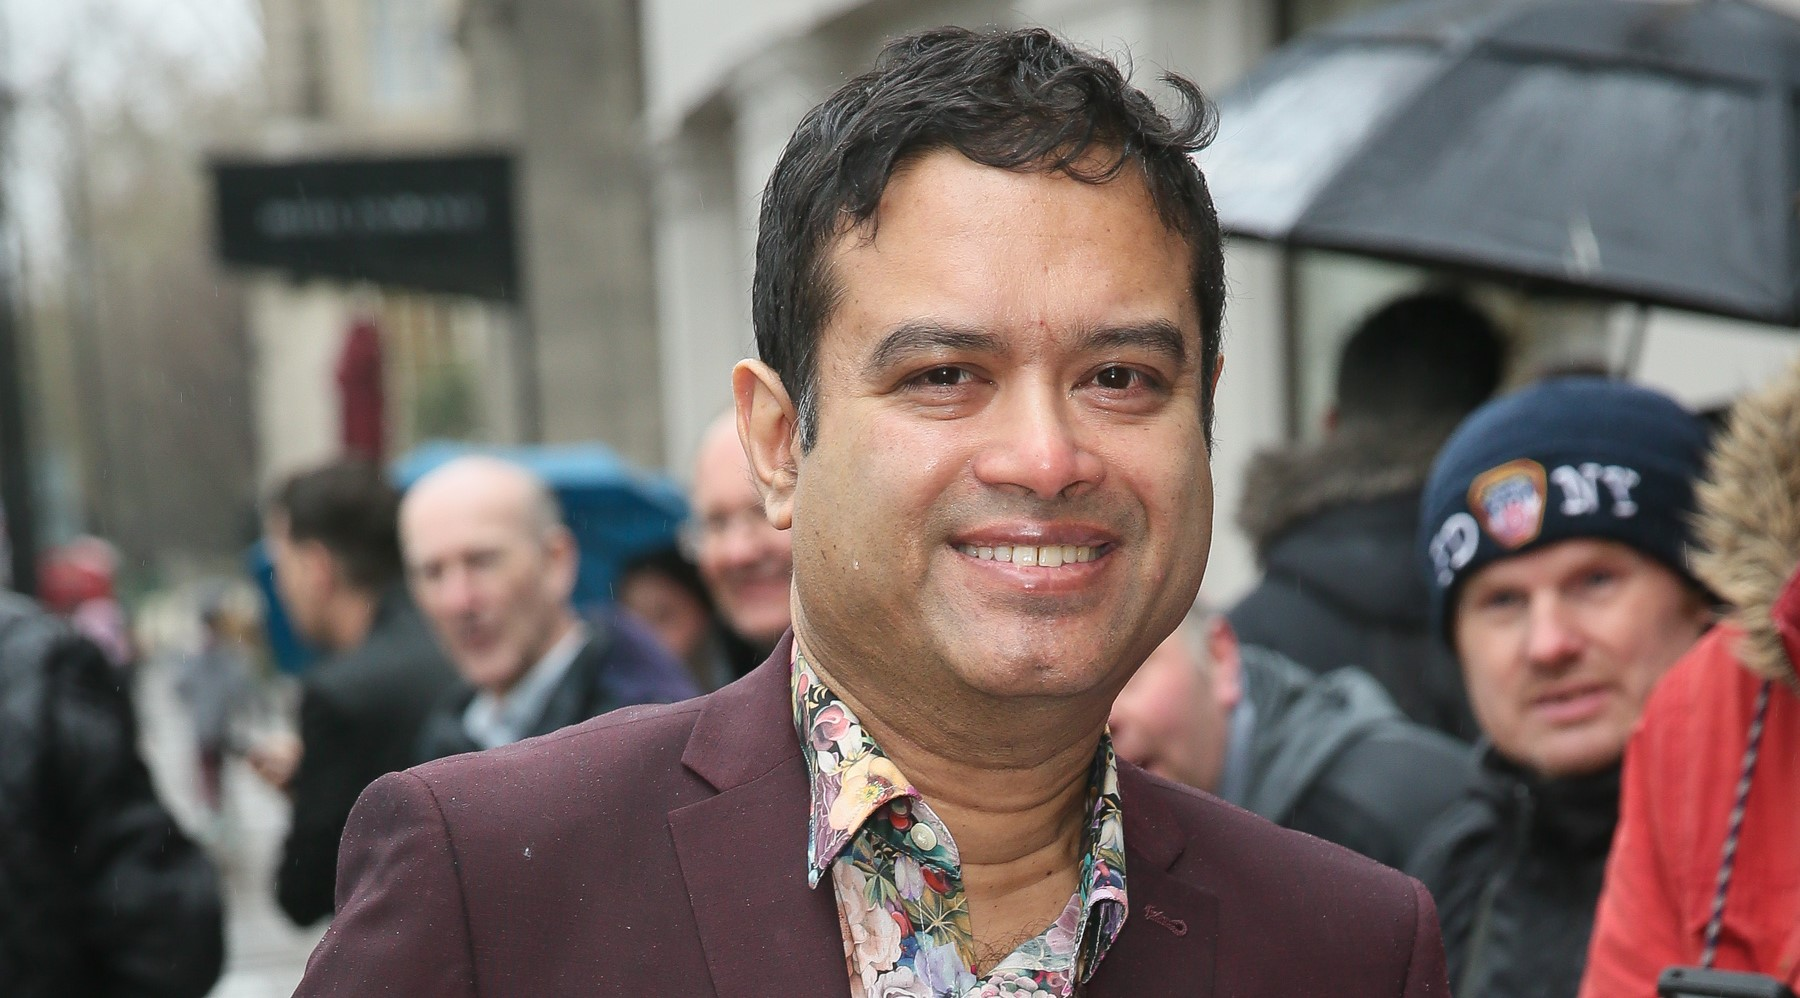 The Chase's Paul Sinha mocks claims he had died following Parkinson's diagnosis